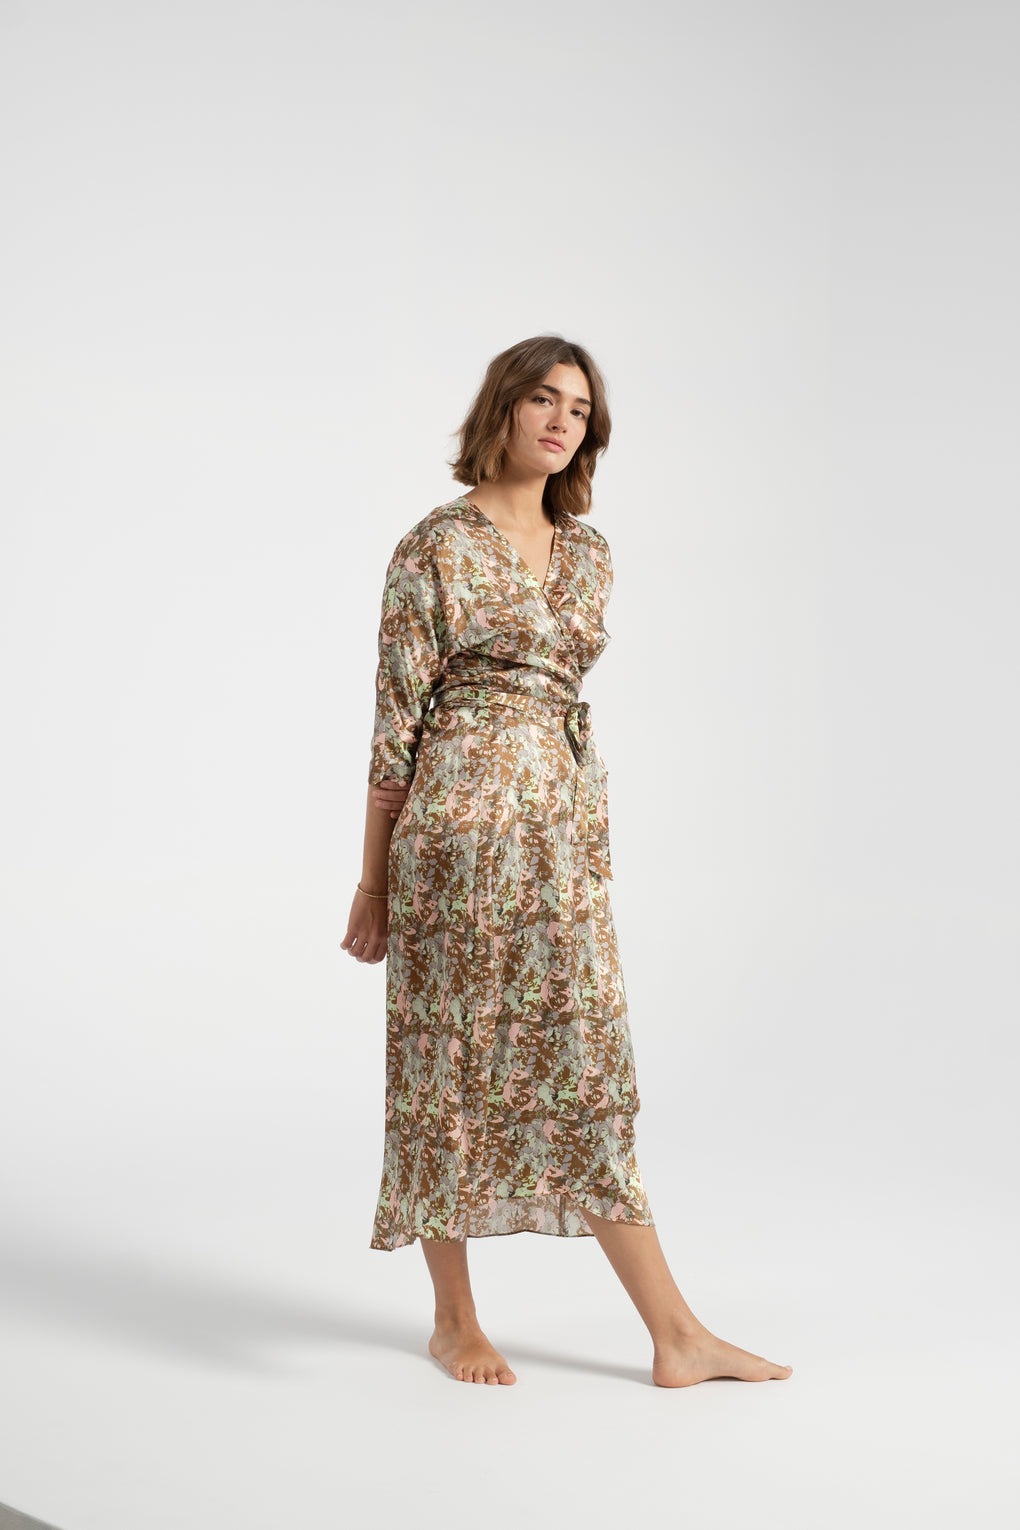 No. 6-No. 6 Georgia dress-wrap dress-No.6 wrap dress-silk wrap dress - Idun - St. Paul